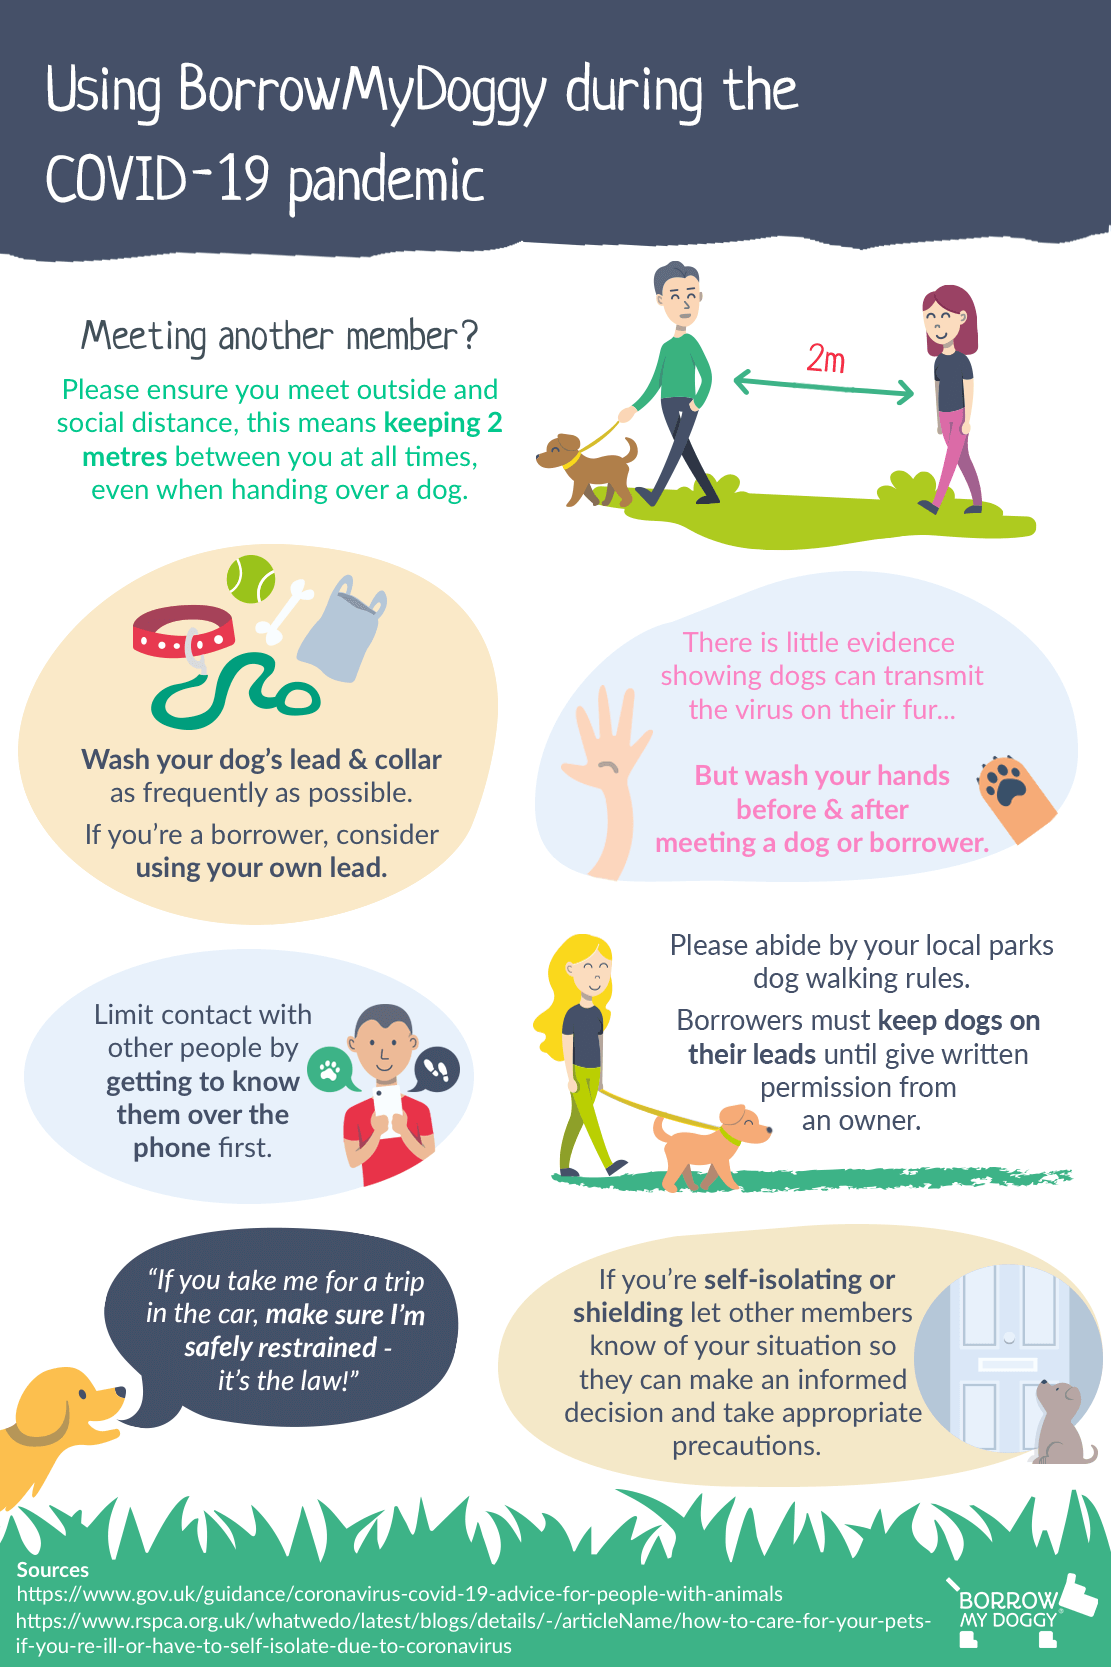 Infographic, using BorrowMyDoggy during COVID-19, keep your distance, wash dog leads, wash your hands, keep dogs on leads